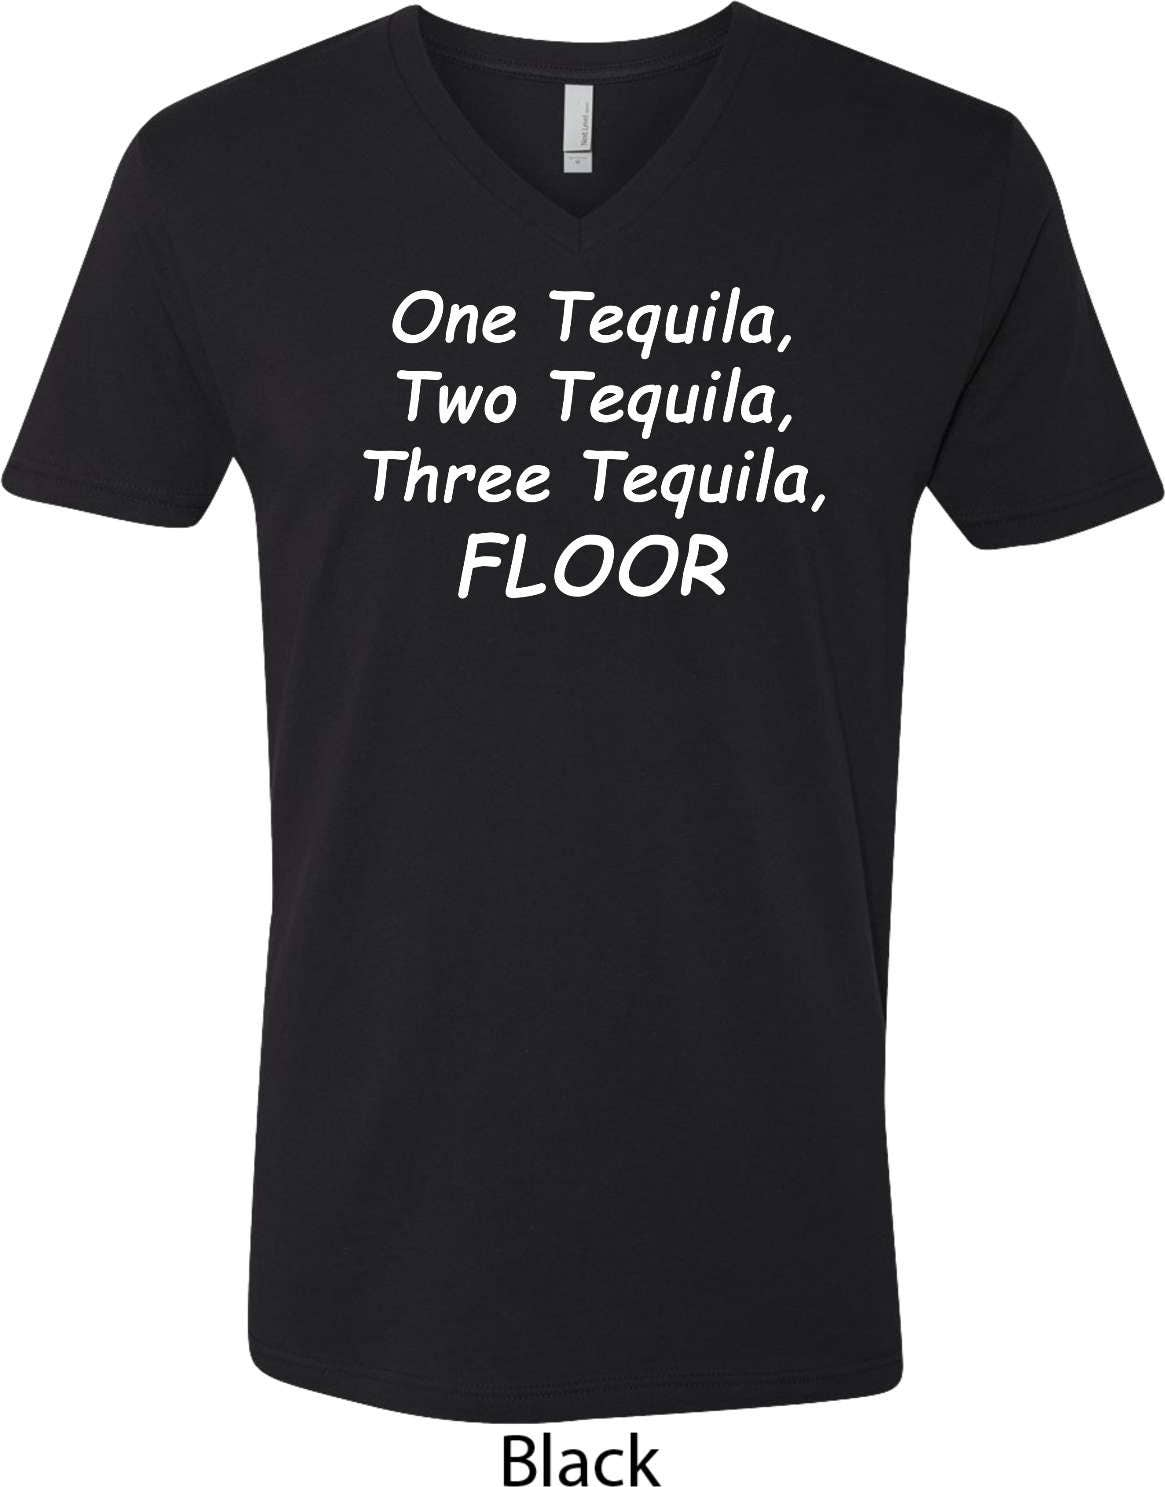 Men 39 s one tequila two tequila three tequila floor for 1 tequila 2 tequila 3 tequila floor song